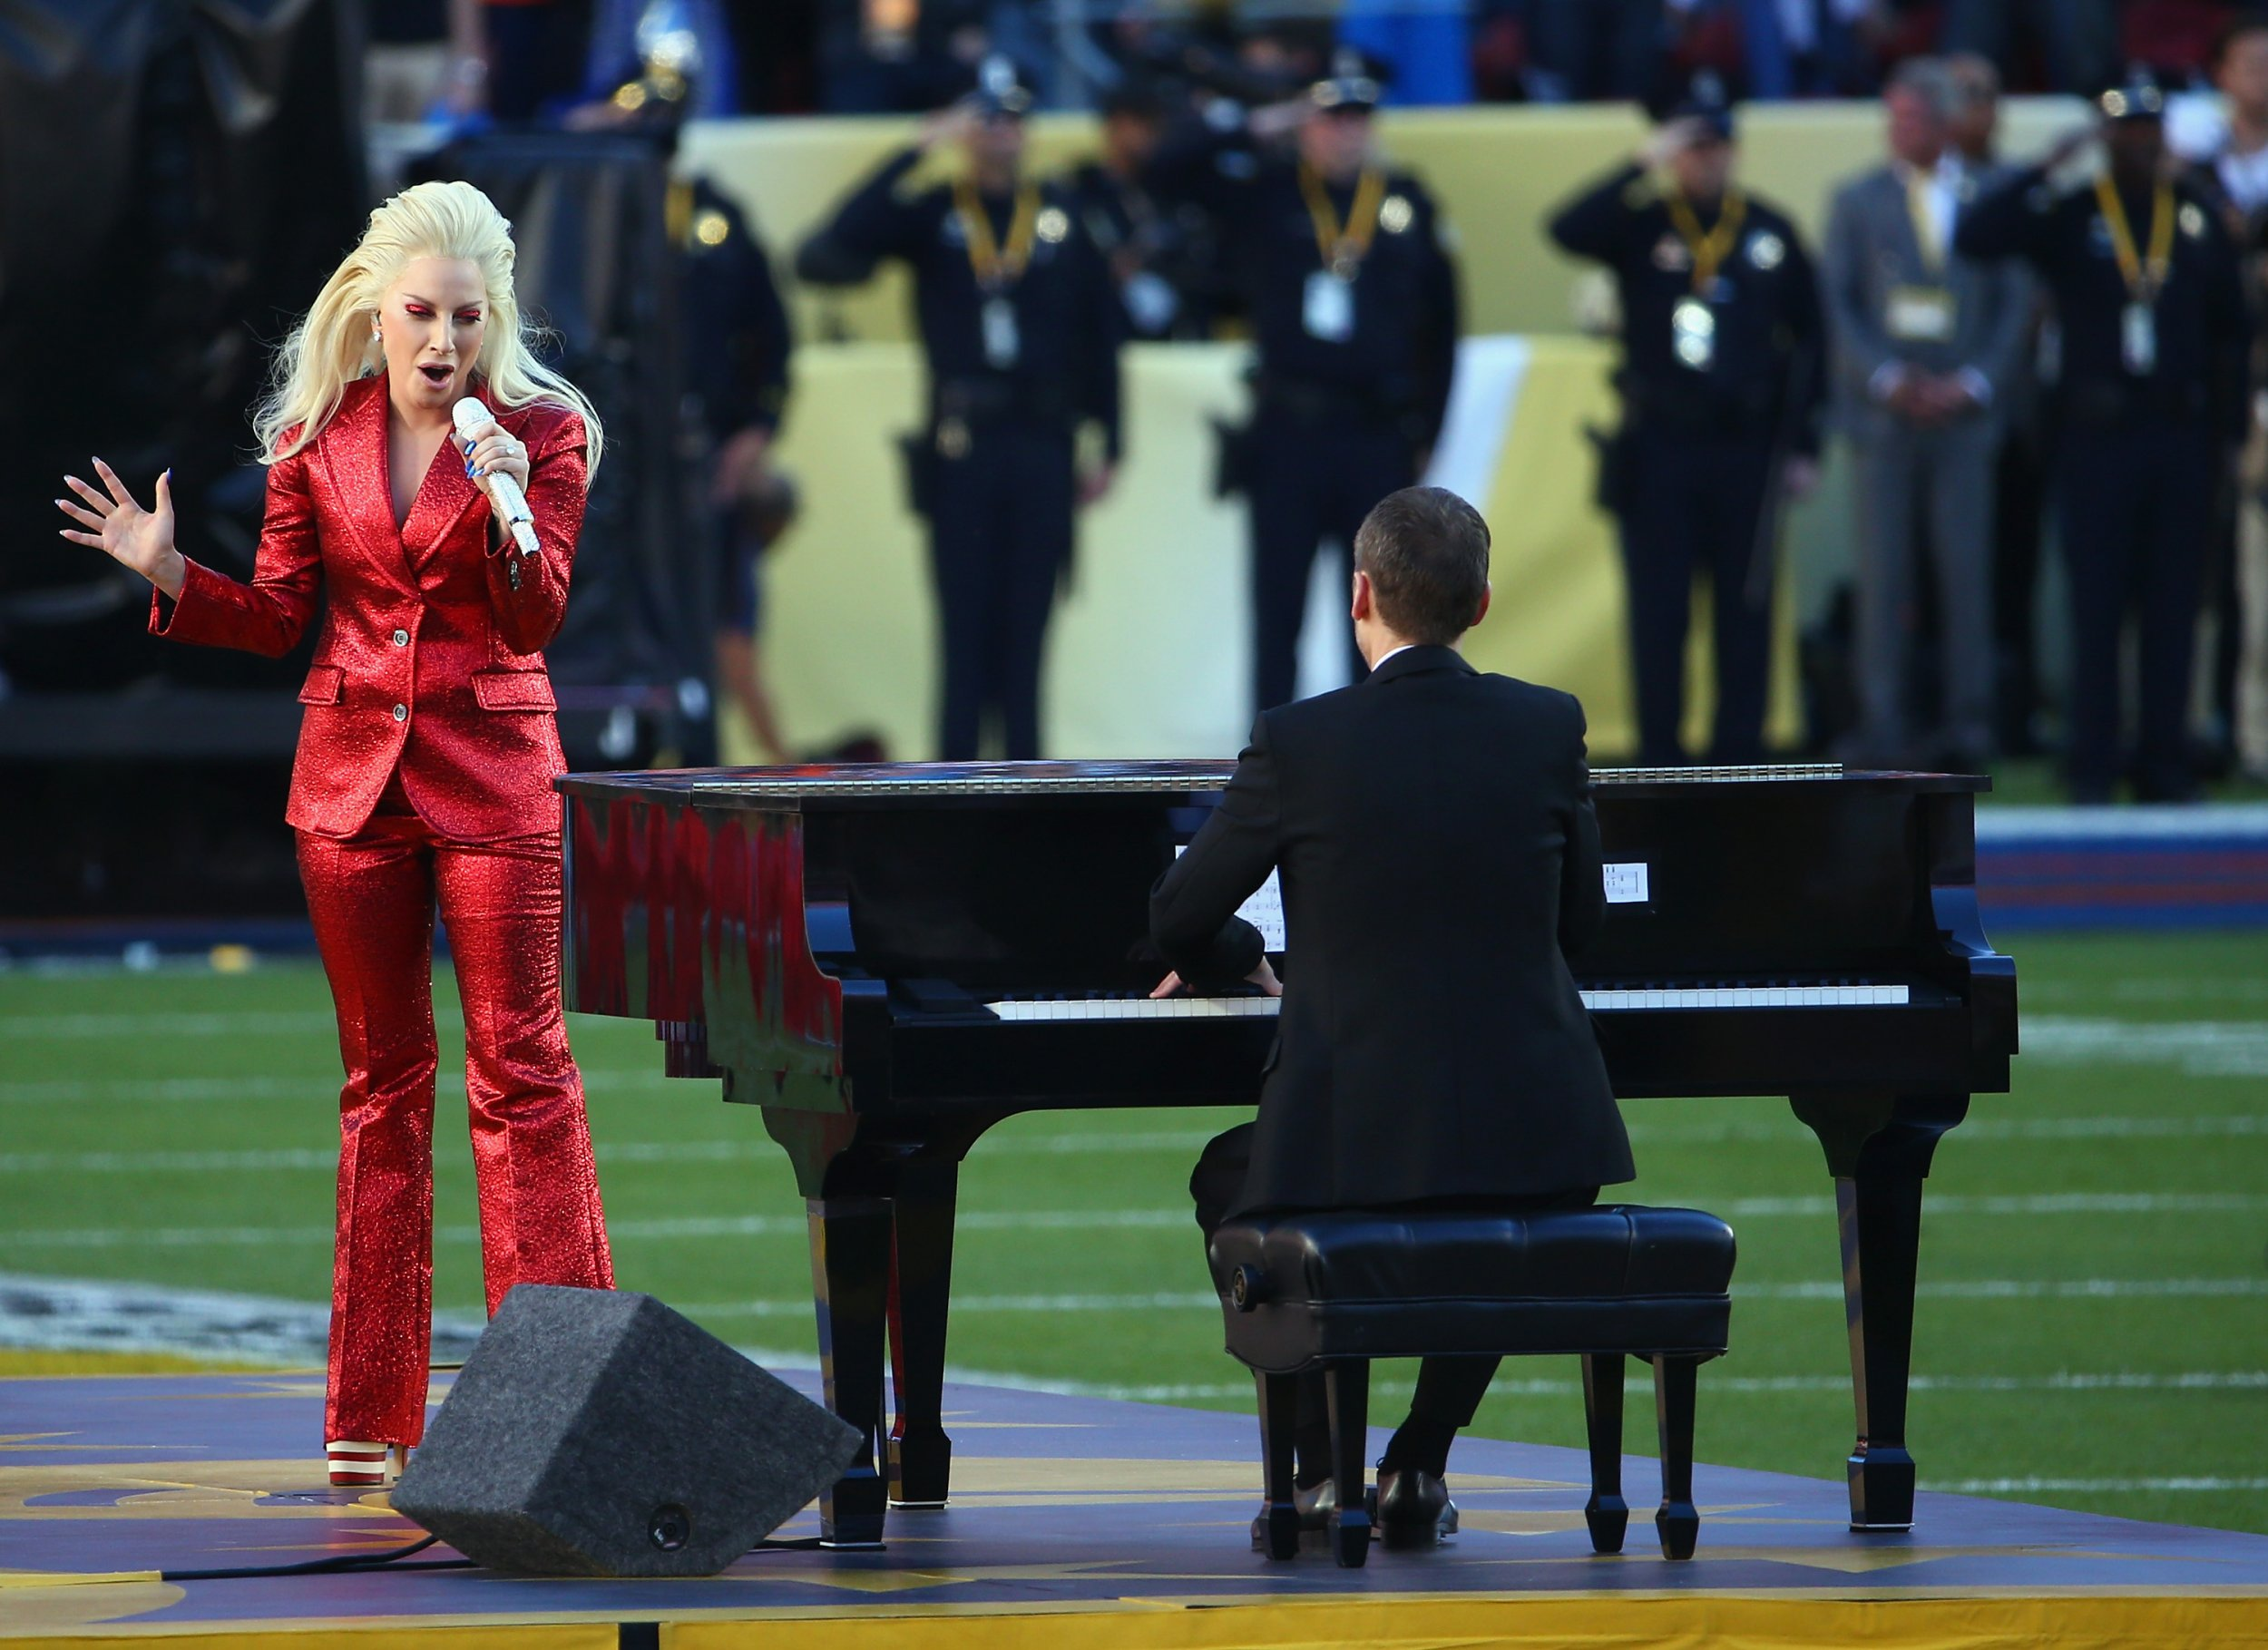 Lady Gaga at the Super Bowl